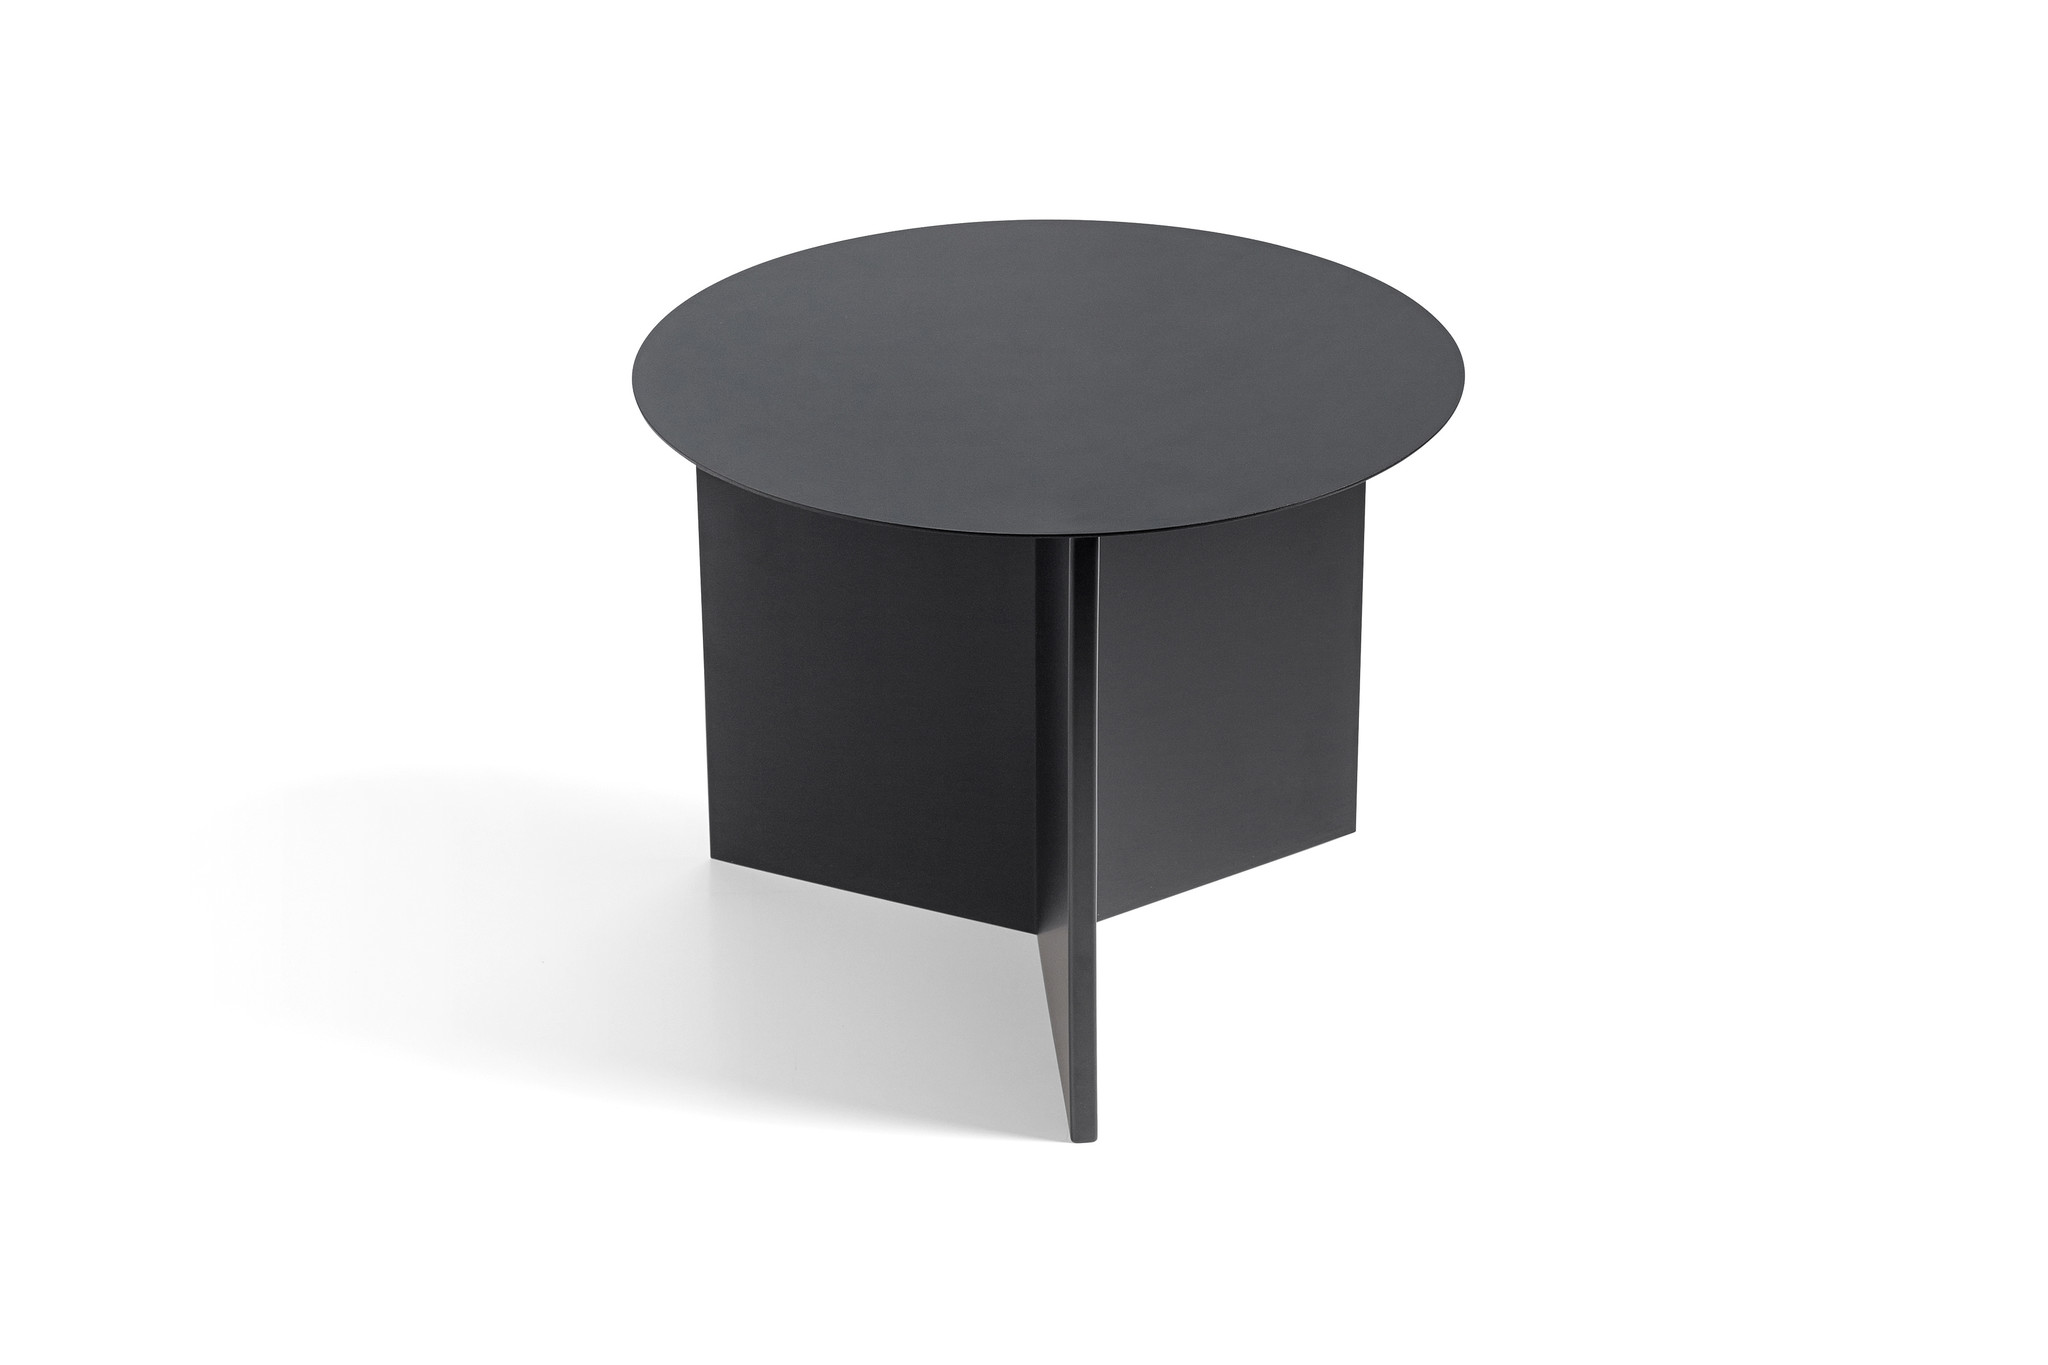 Slit table - Round side table-1